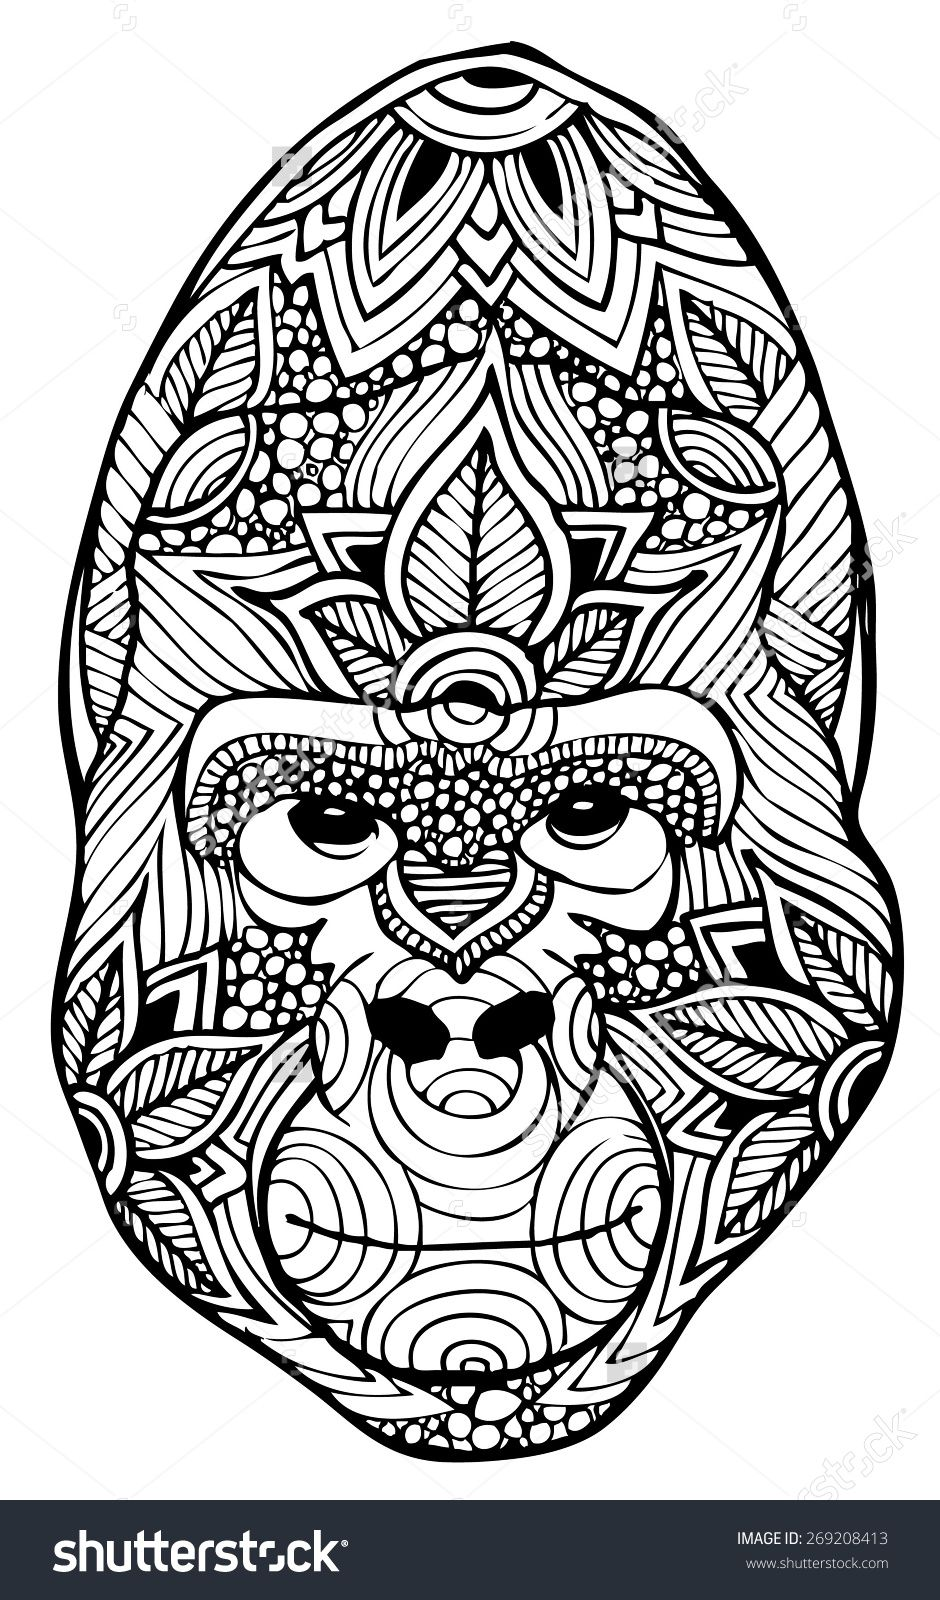 Gorilla Coloring Page Animal Coloring Pages Zentangle Mandala